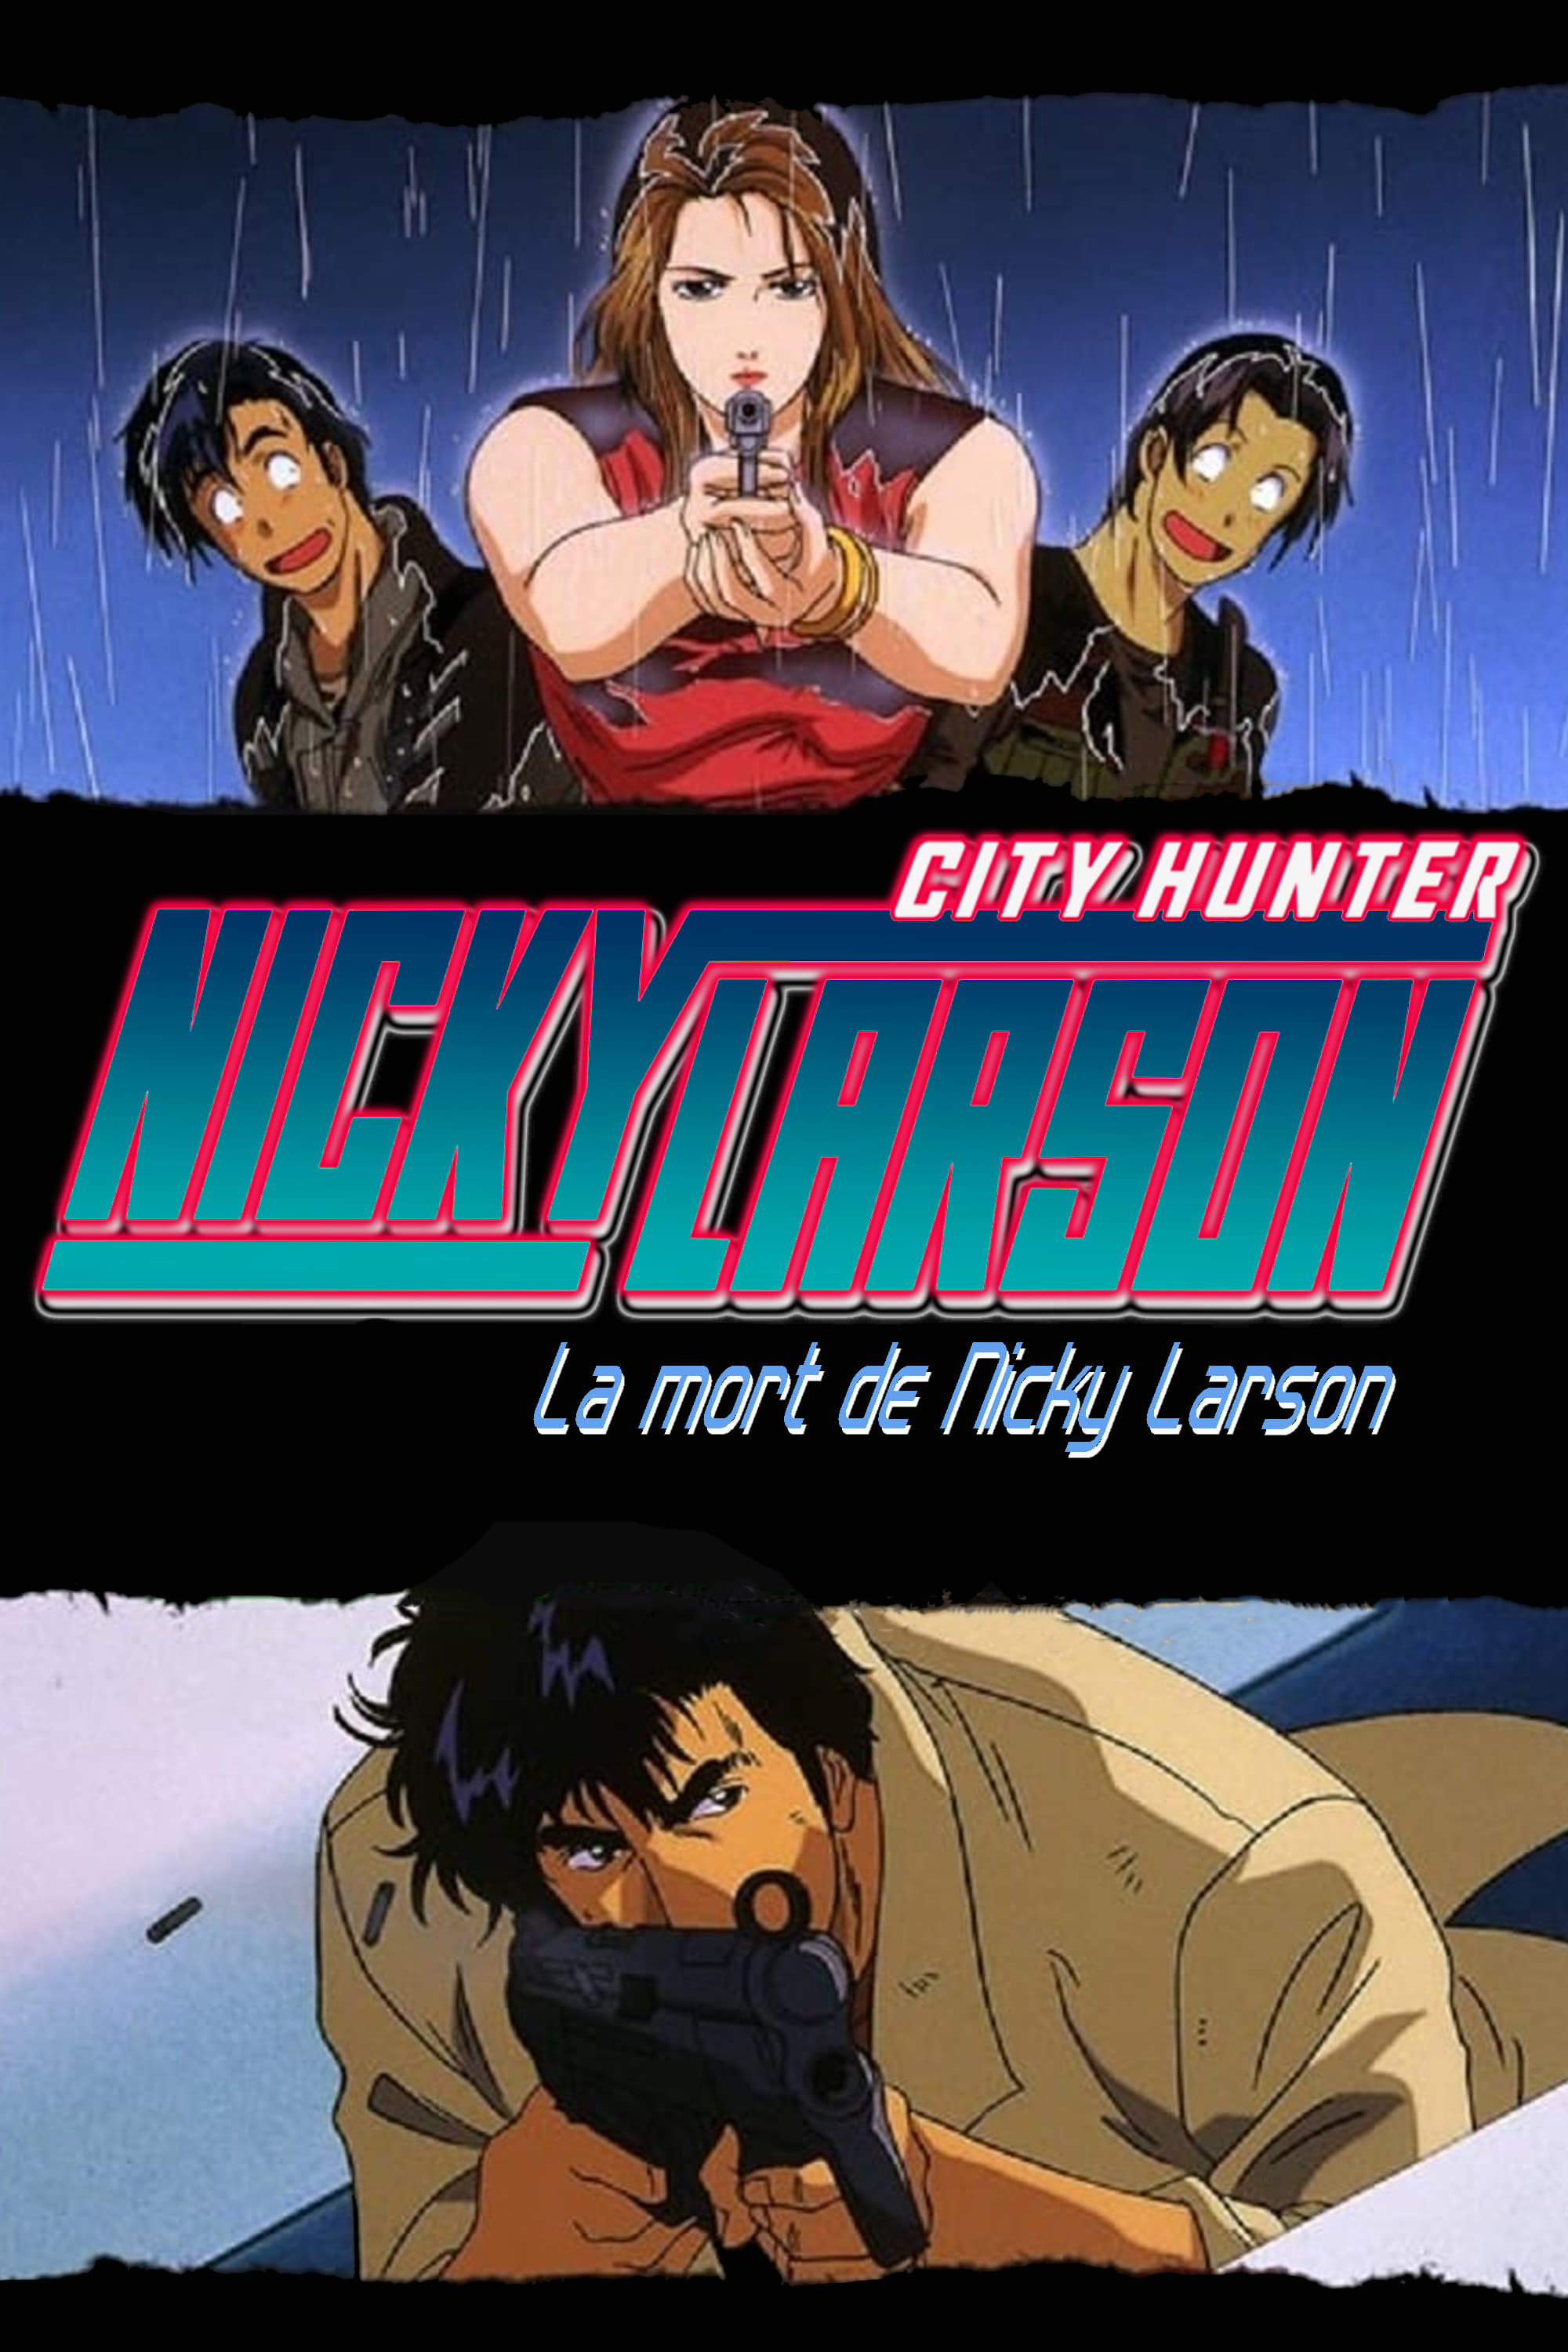 City Hunter Special: The Death of Vicious Criminal Saeba Ryo (1999)